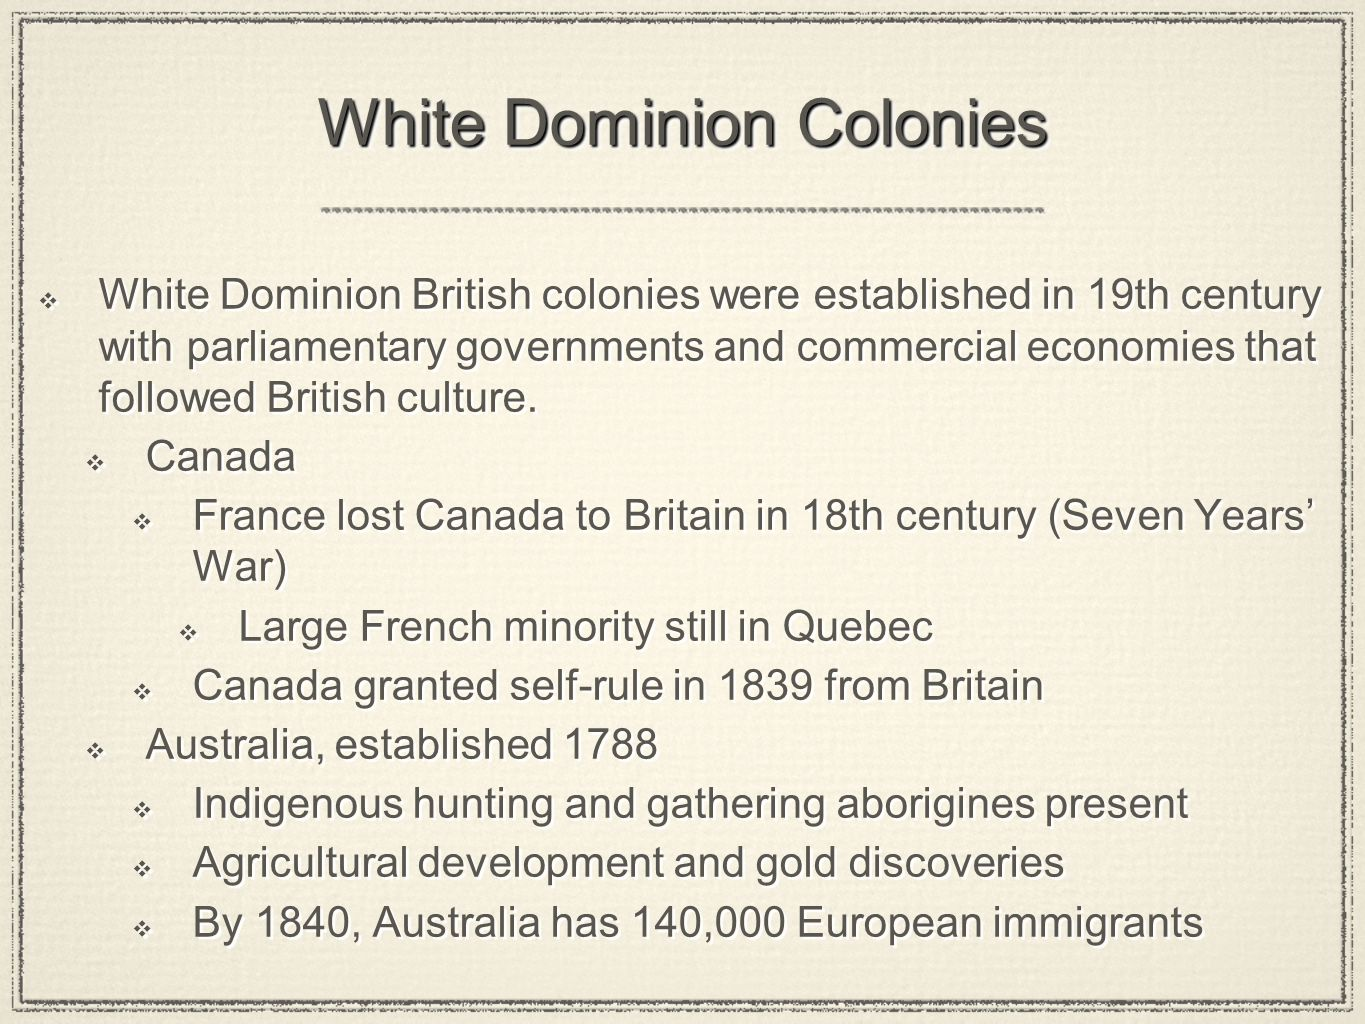 White Dominion Colonies